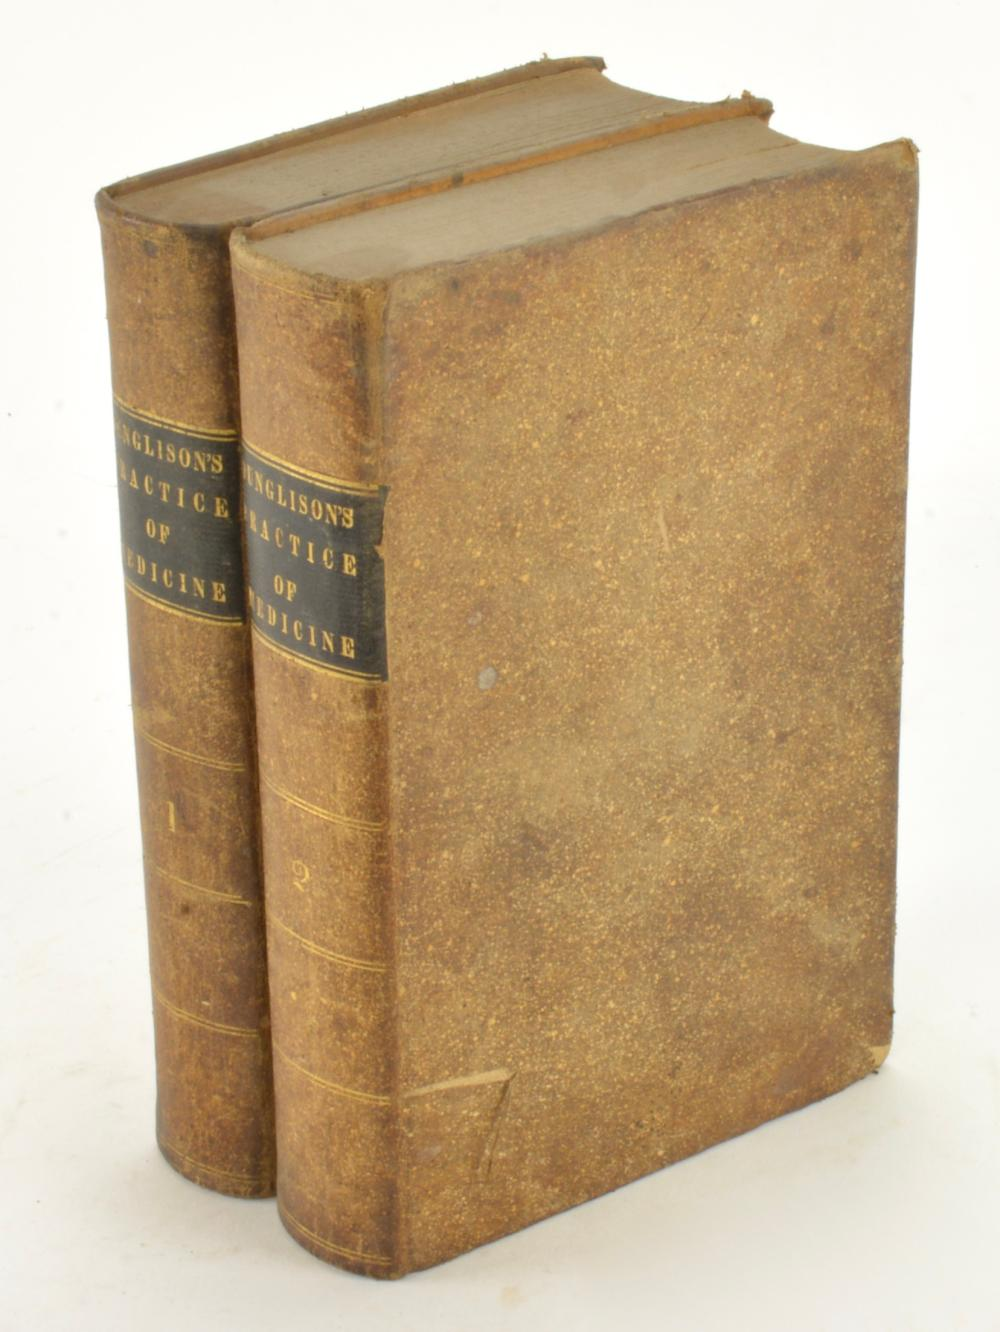 Dunglison's Practice Of Medicine 1844 Philadelphia 2 Vol Set